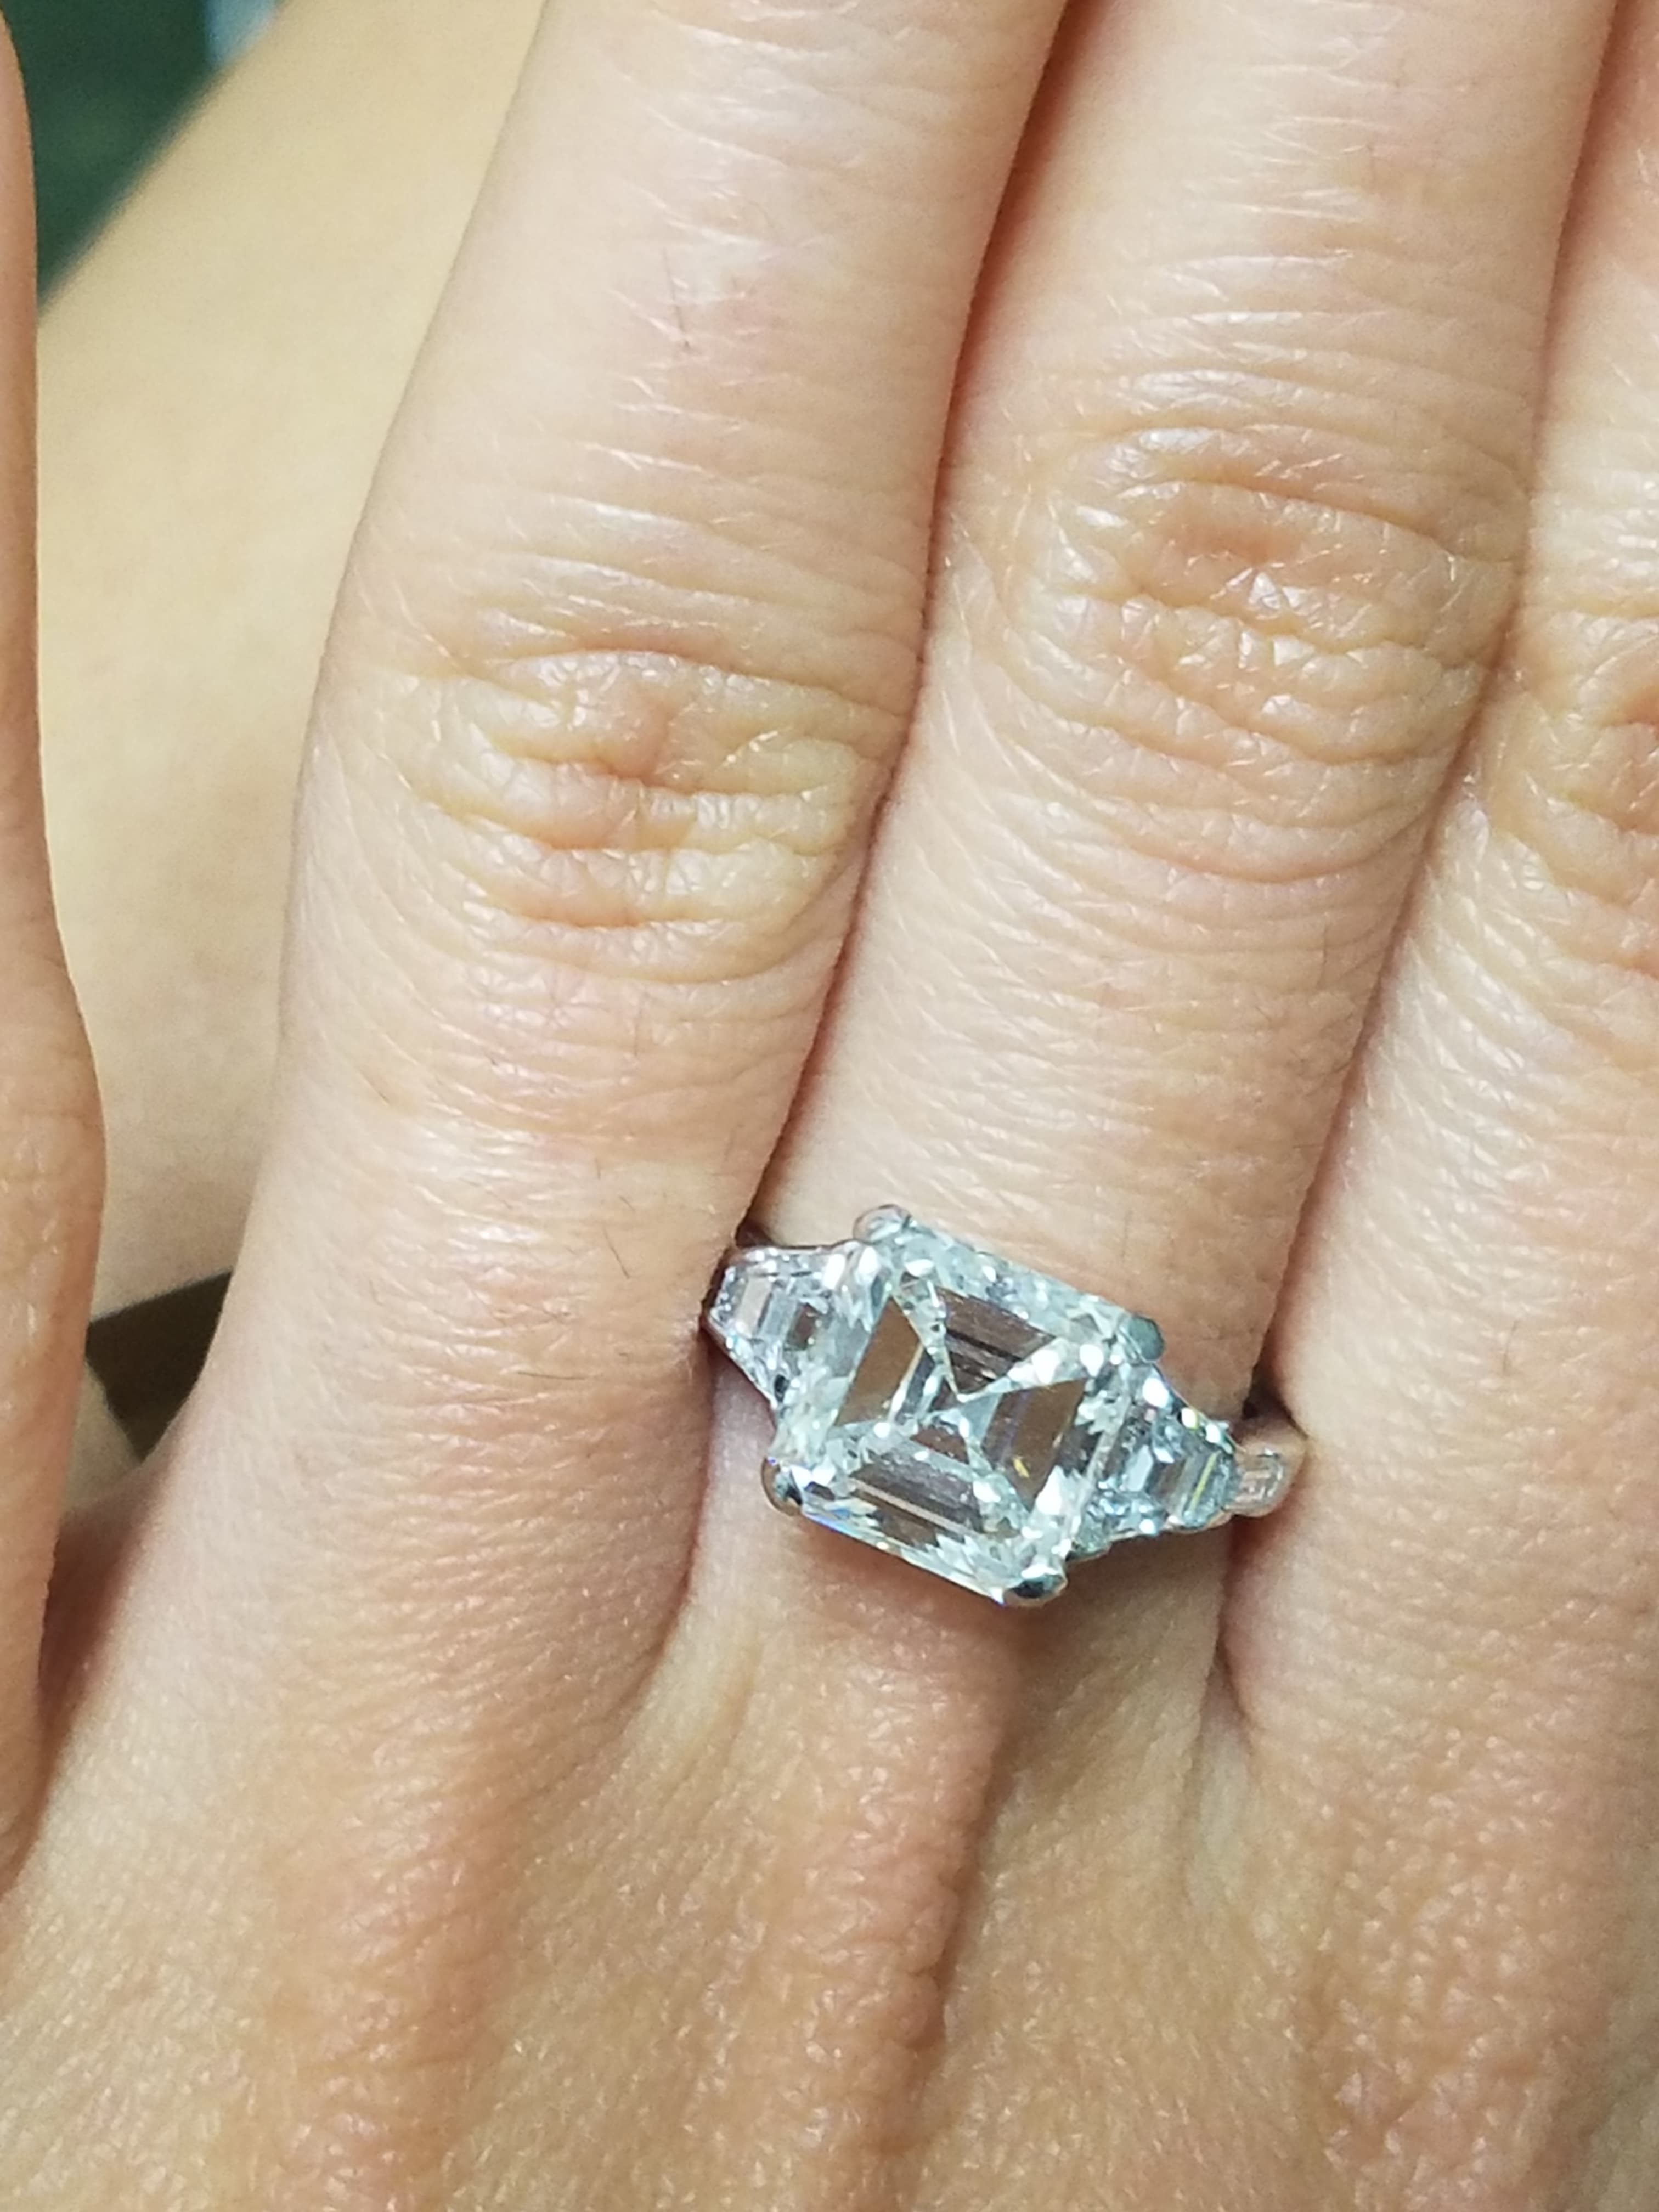 3 Carat Square Emerald Cut Diamond Engagement Ring Gia Certified In Platinum I Do Now I Don T